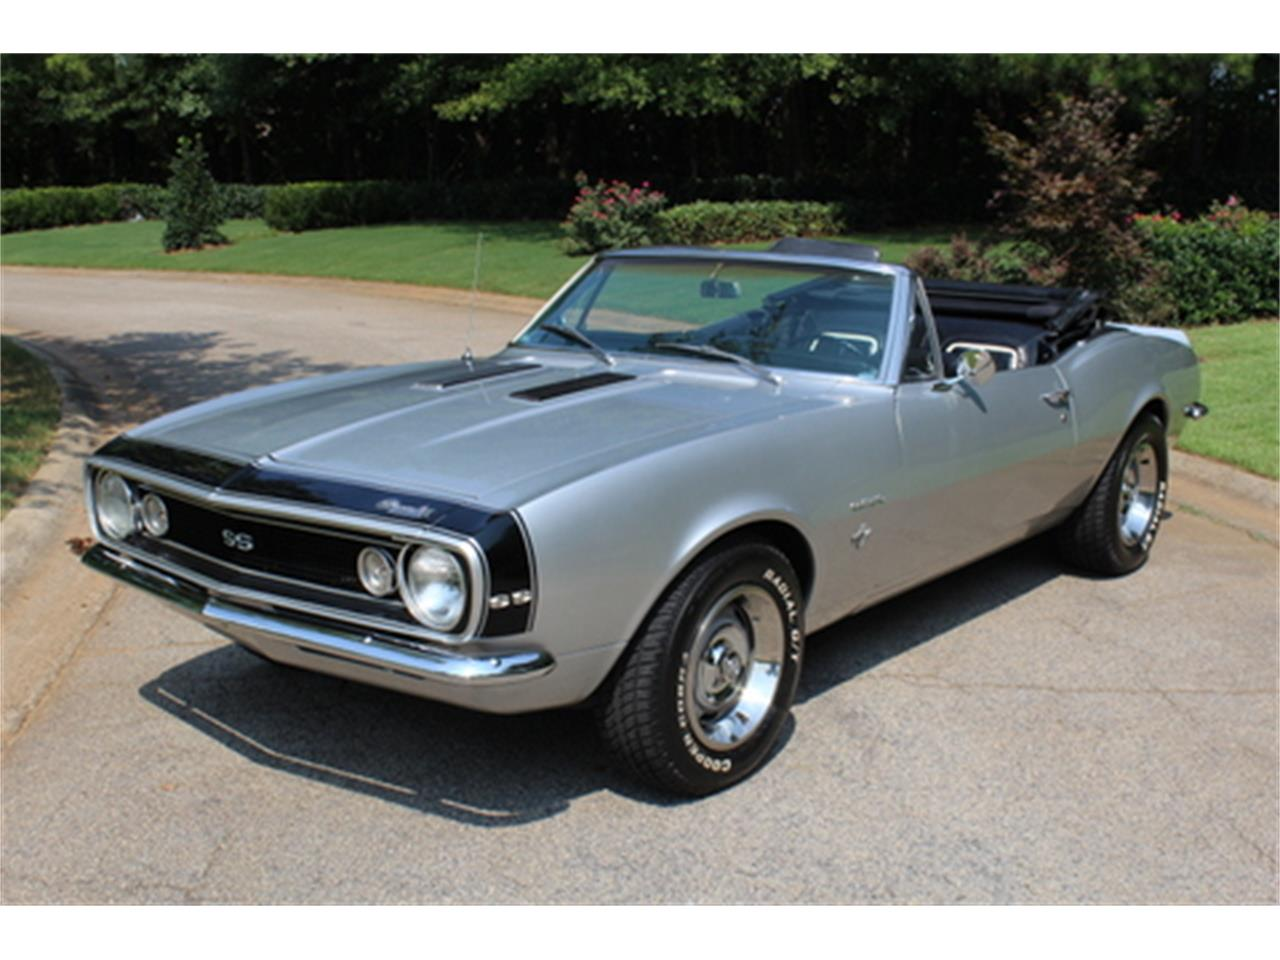 For Sale: 1967 Chevrolet Camaro in Roswell, Georgia